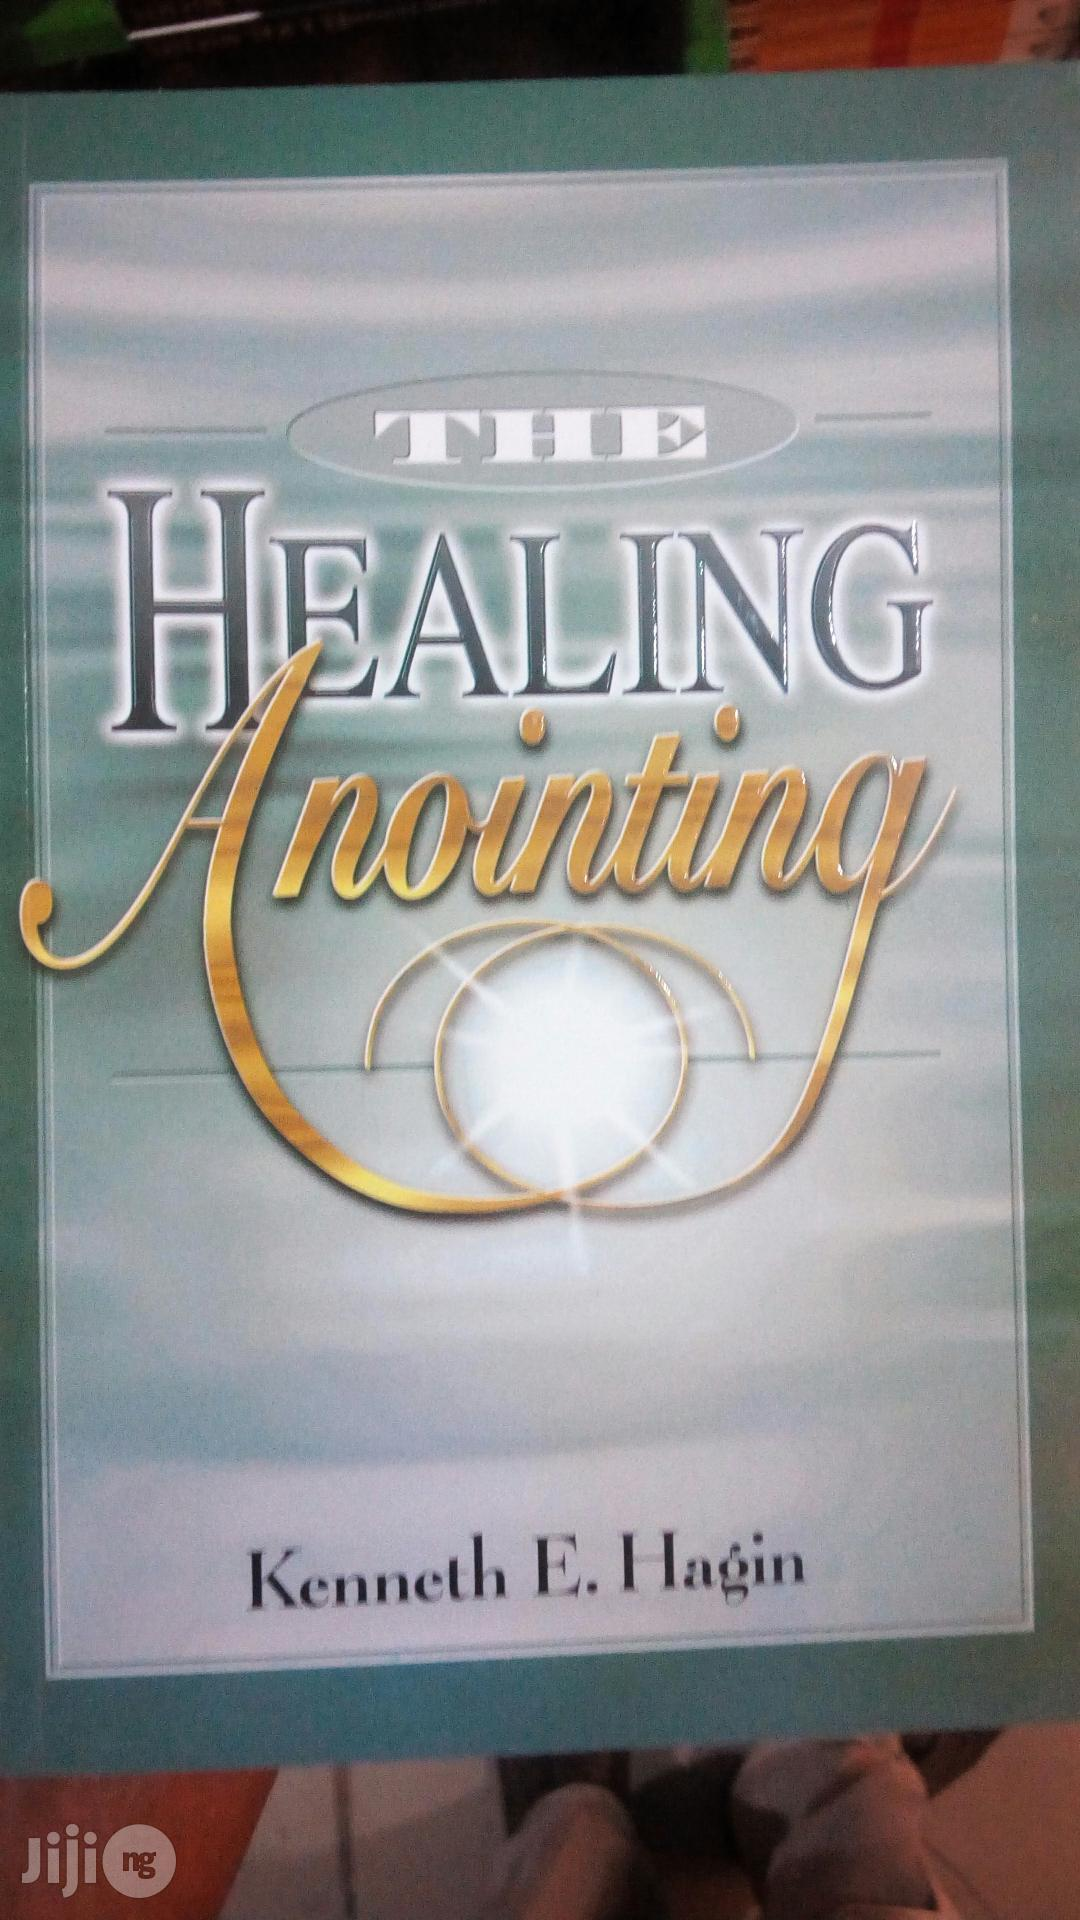 Healing Annonting By Kenneth Hagin